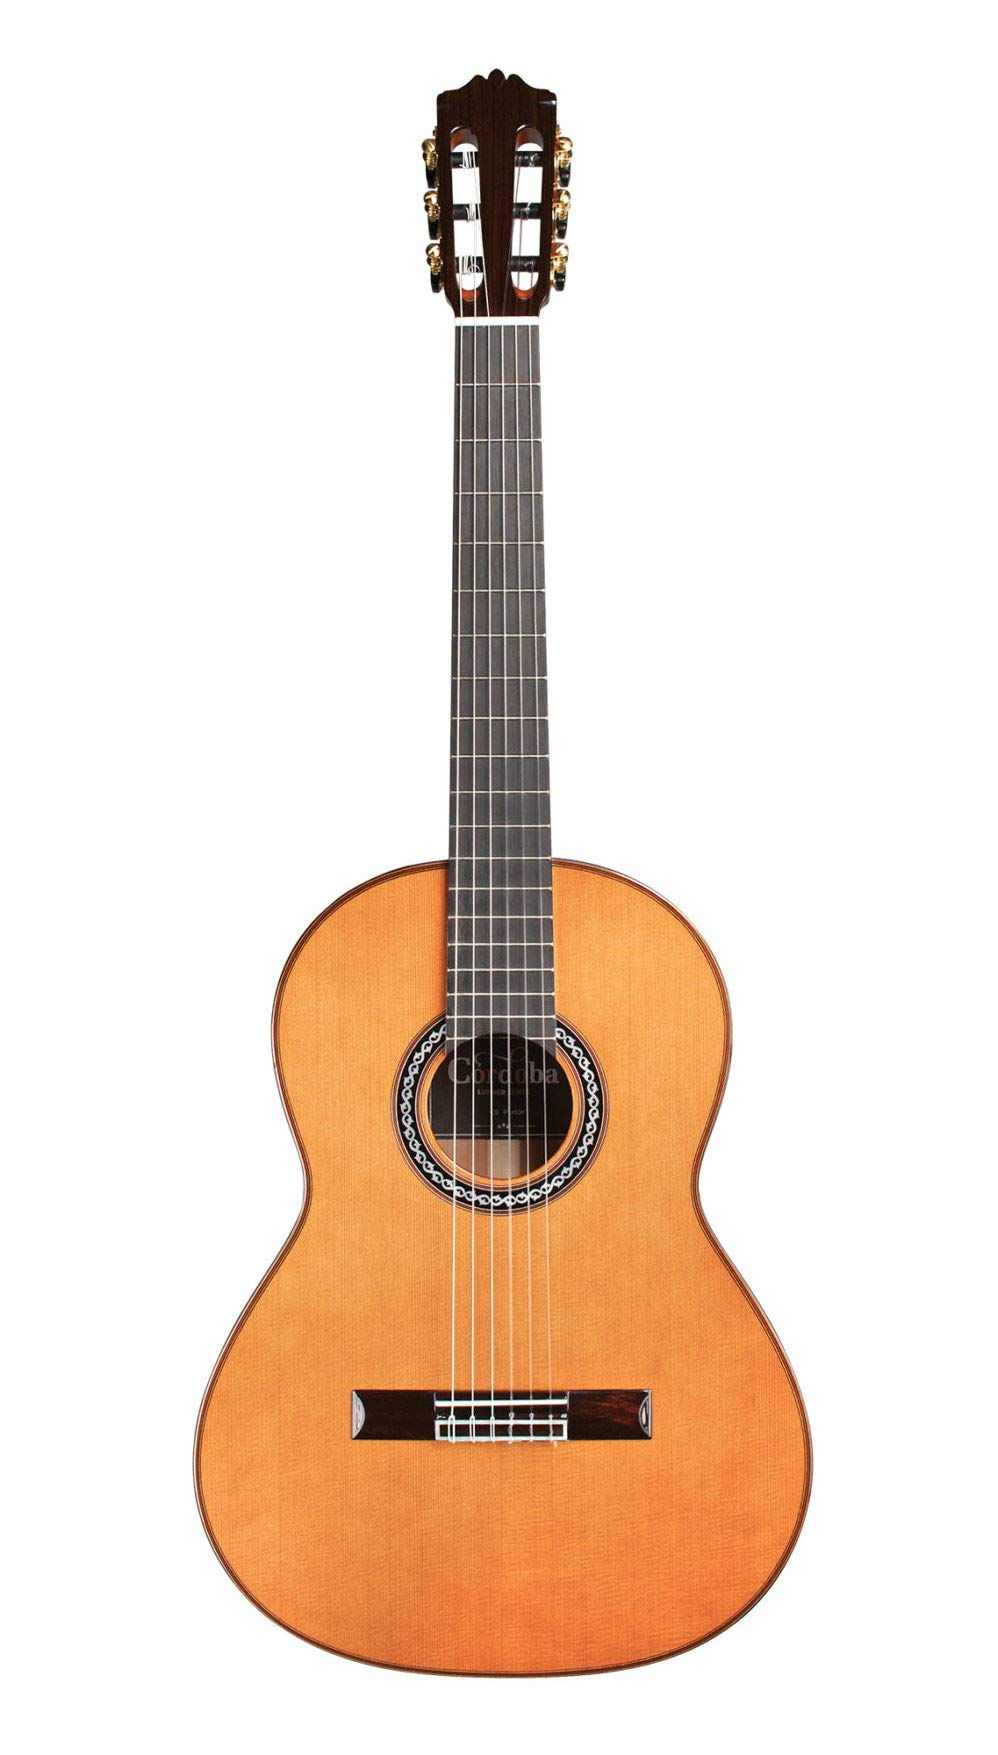 Cordoba Guitars C9 Parlor CD/MH 7/8 Size Classical Guitar with Polyfoam Case and Accessory Pack